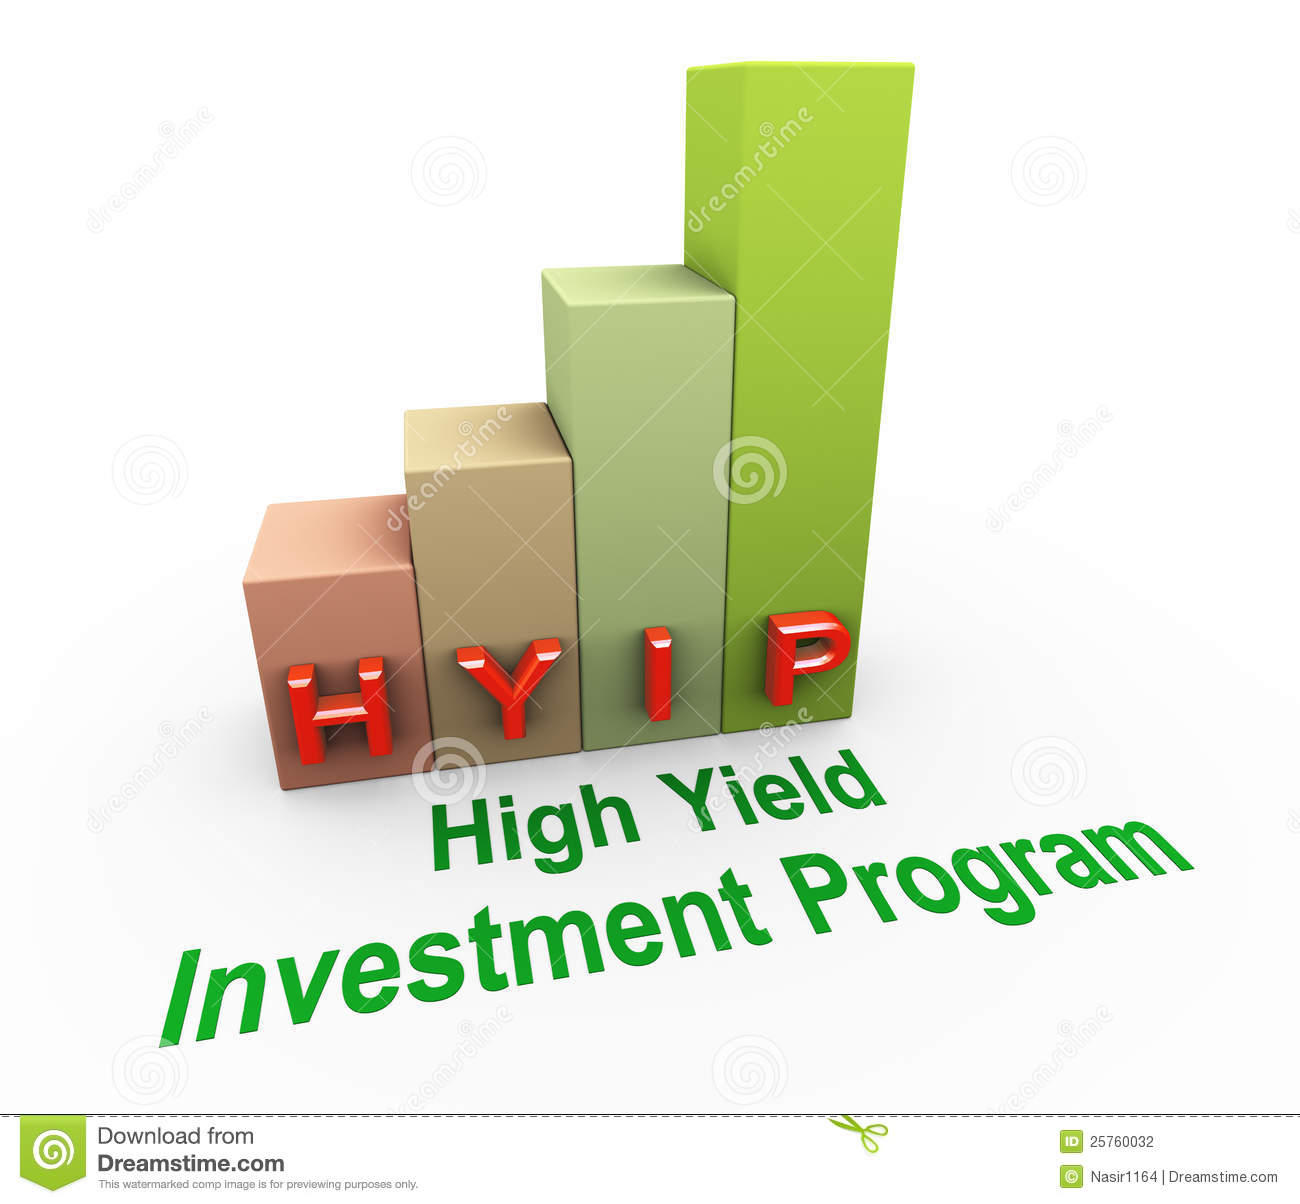 High-yield investment program - Wikipedia